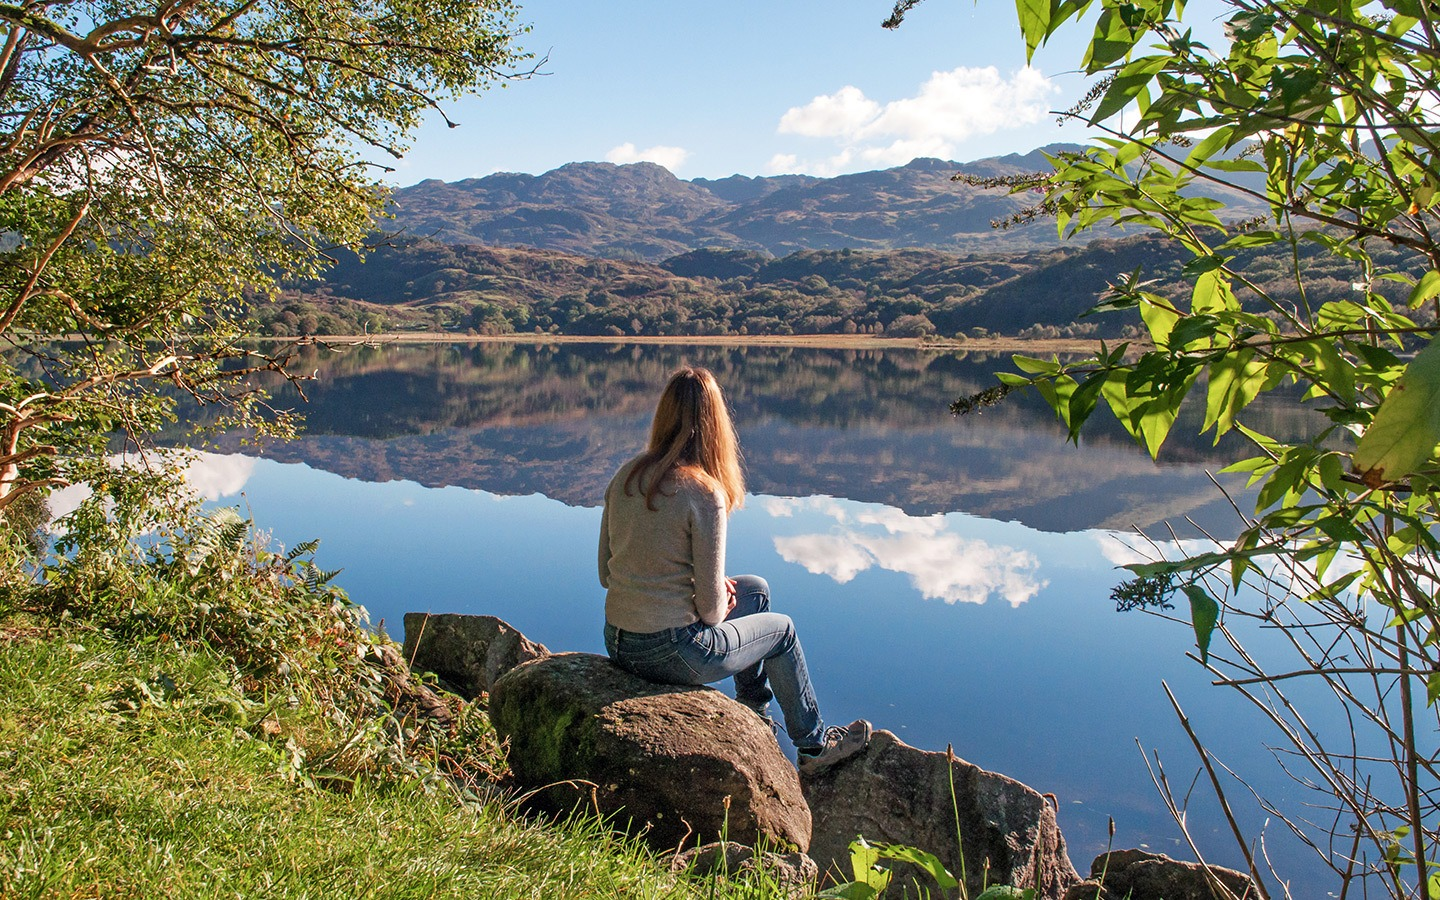 On the banks of Llyn Dinas lake in Snowdonia